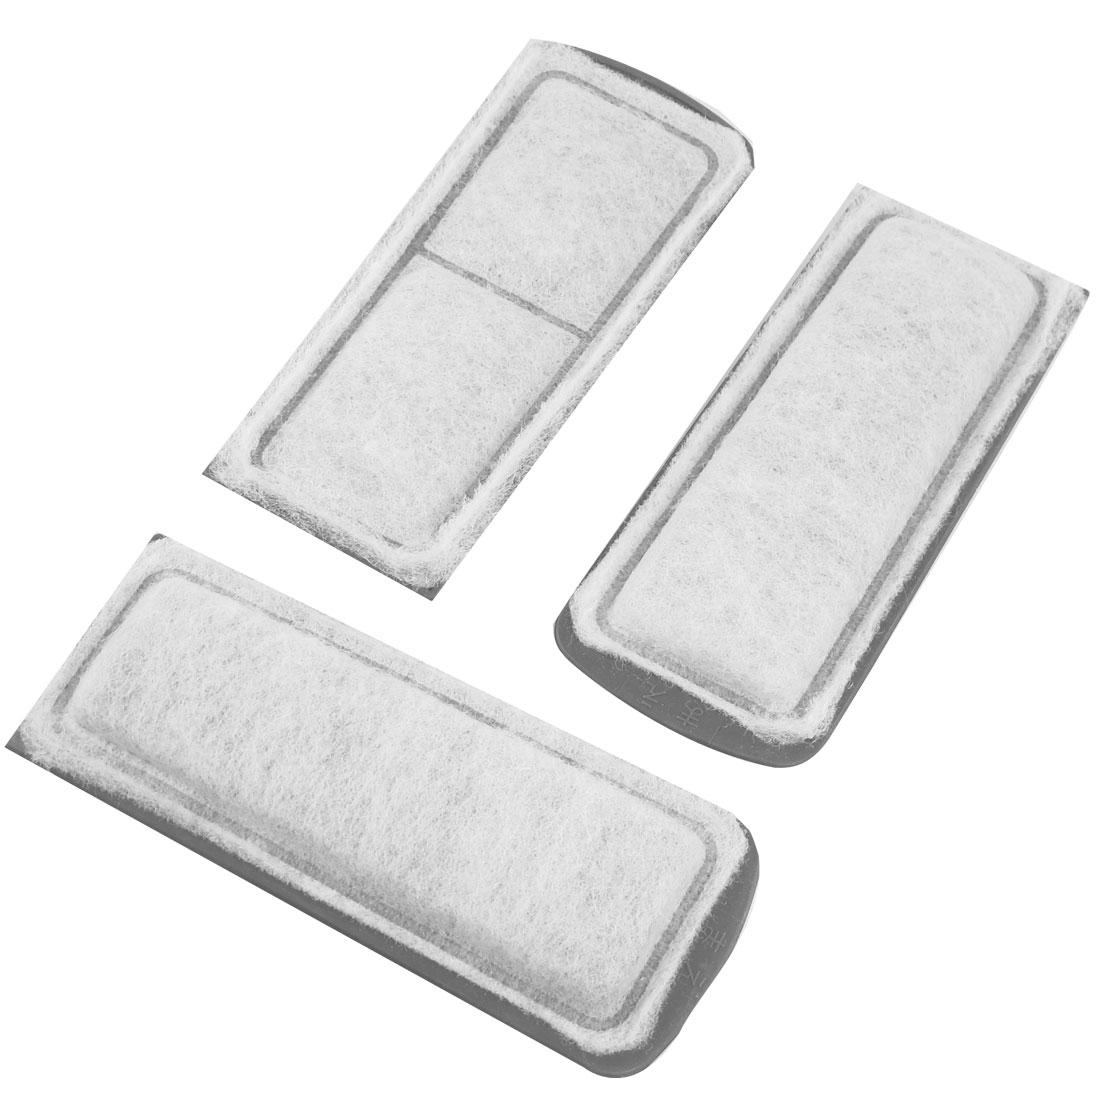 3 Pcs White Gray Recycling Biochemical Filter Sponges Pad for Fish Aquarium